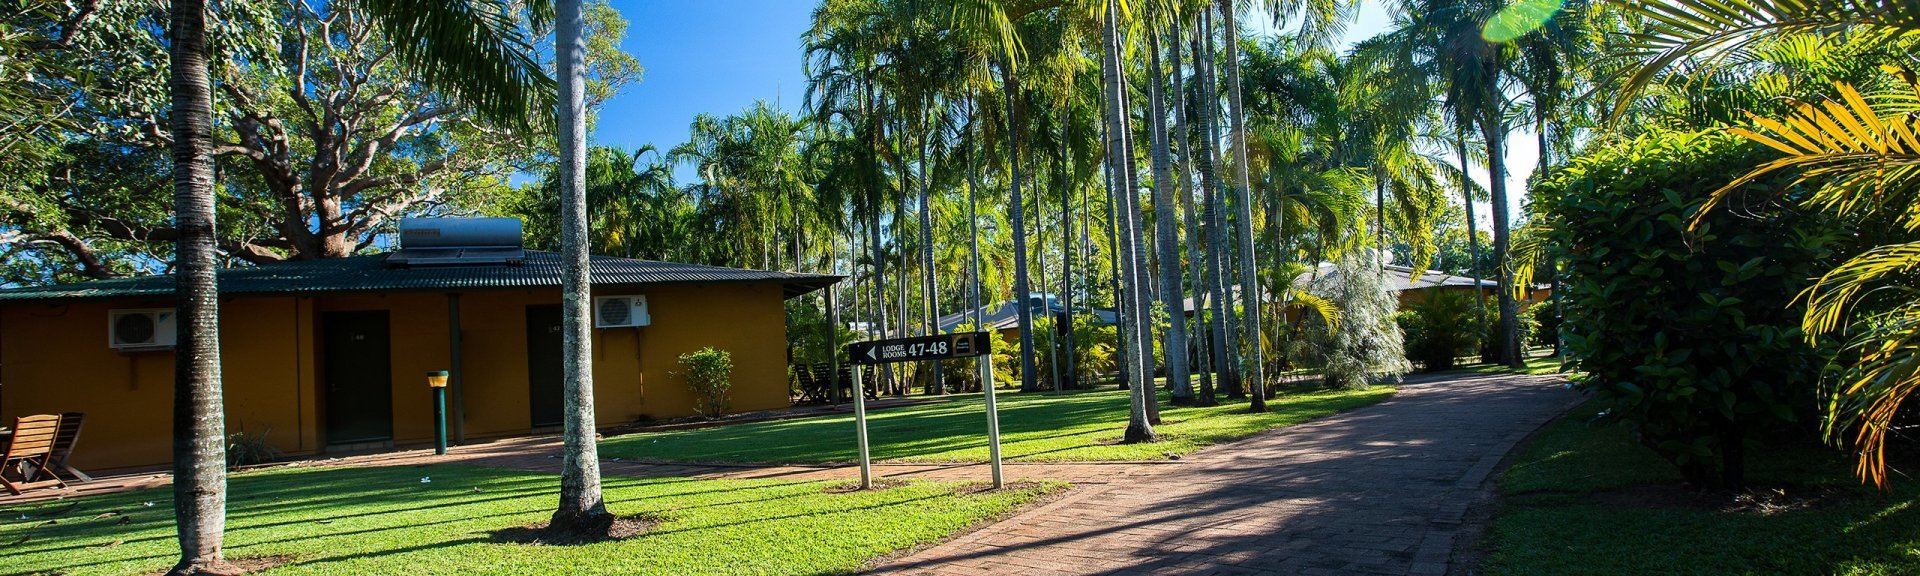 Grounds of Cooinda Lodge